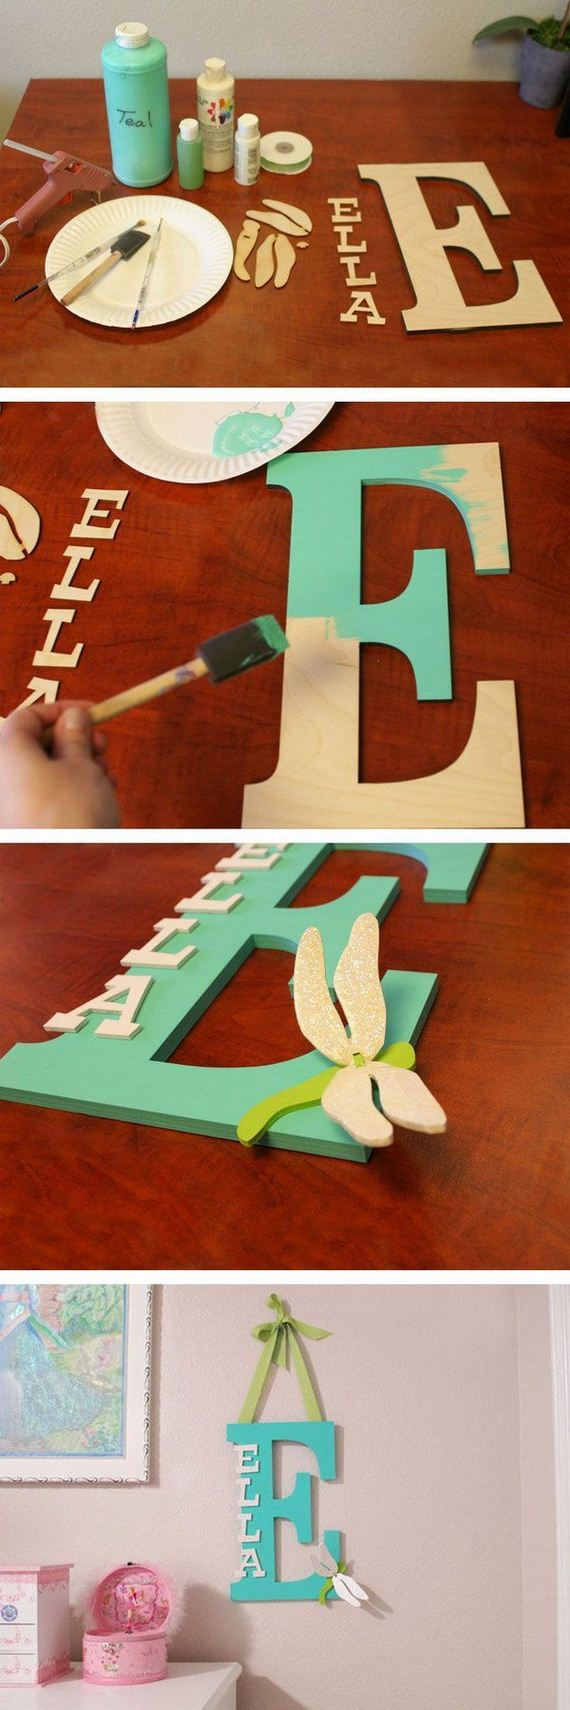 03-diy-letter-ideas-tutorials